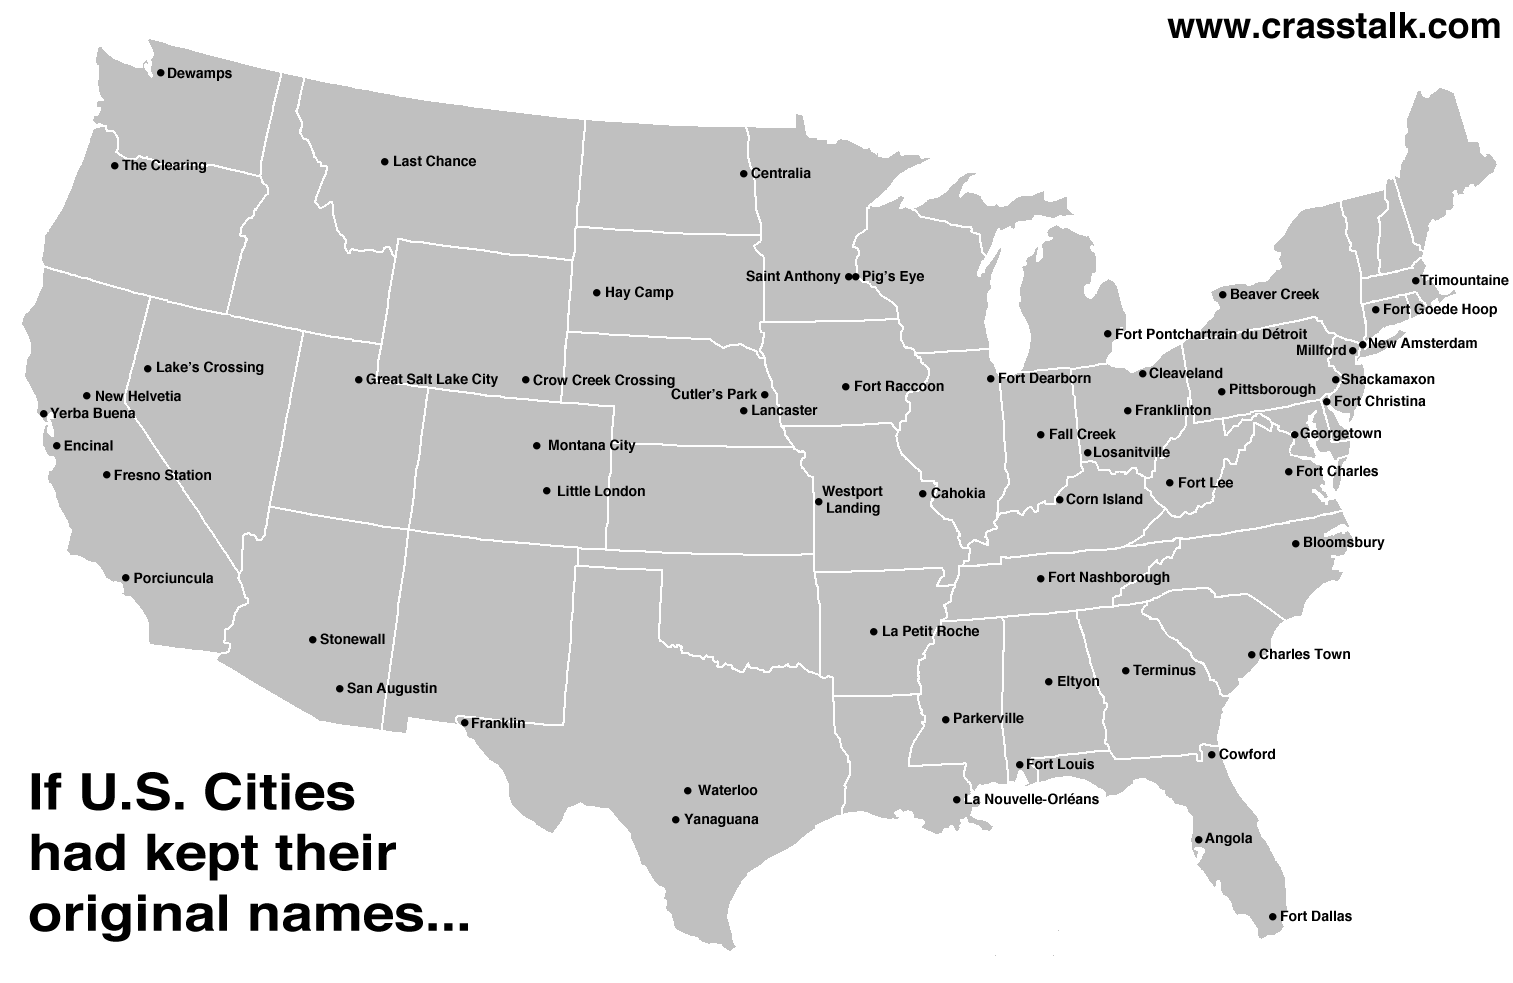 Alternate Us Cities1 The Traveling Maps - Alternate-us-map